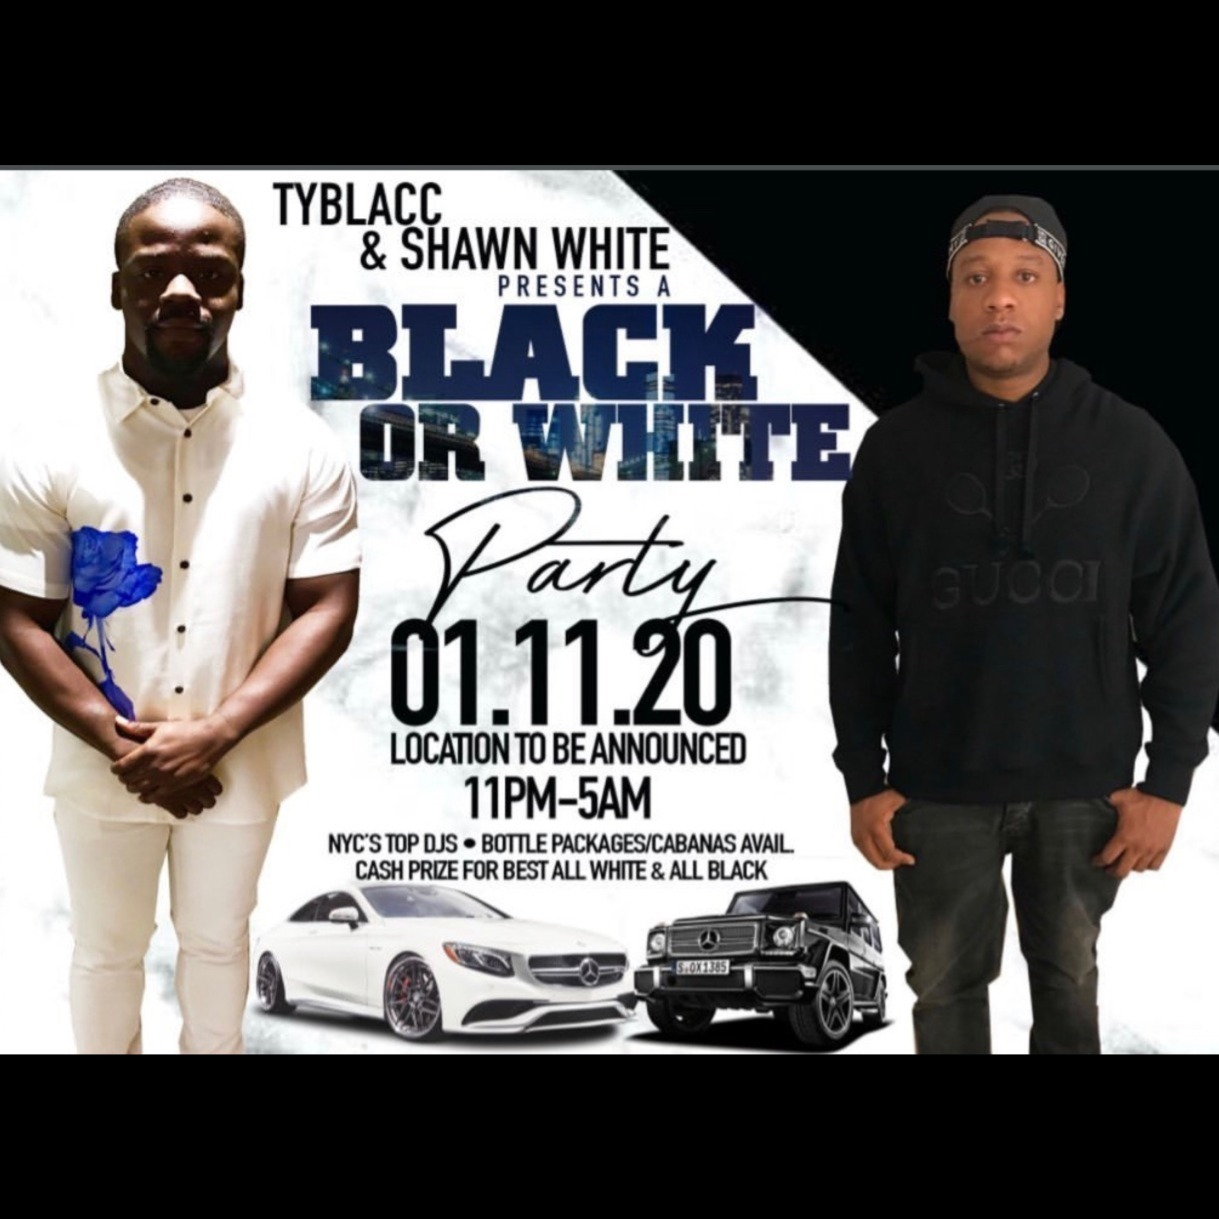 TYBLACC & SHAWN WHITE PRESENTS  BLACK OR WHITE PARTY